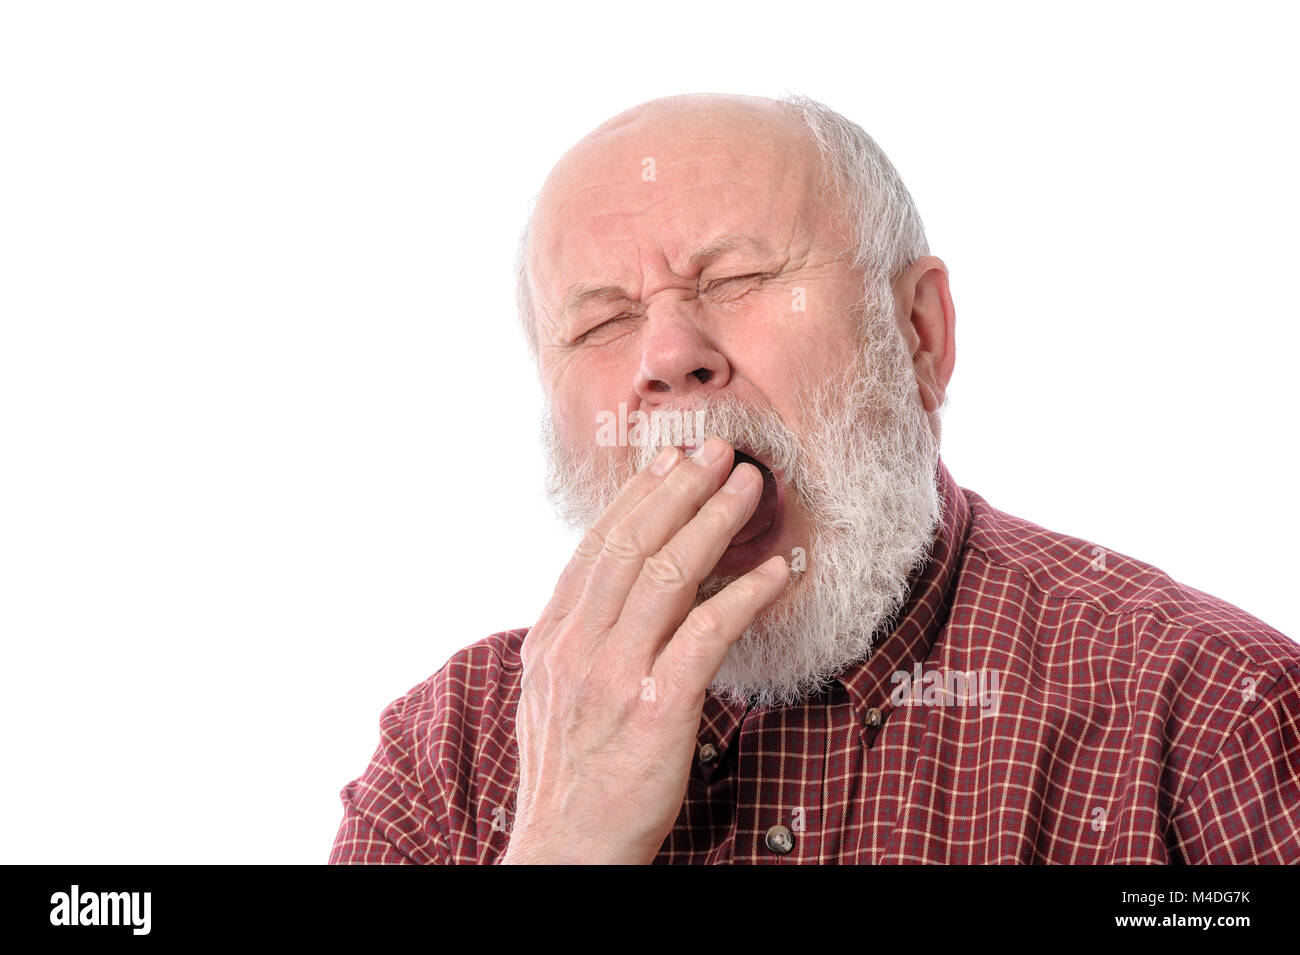 Senior man yawning, isolated on white - Stock Image